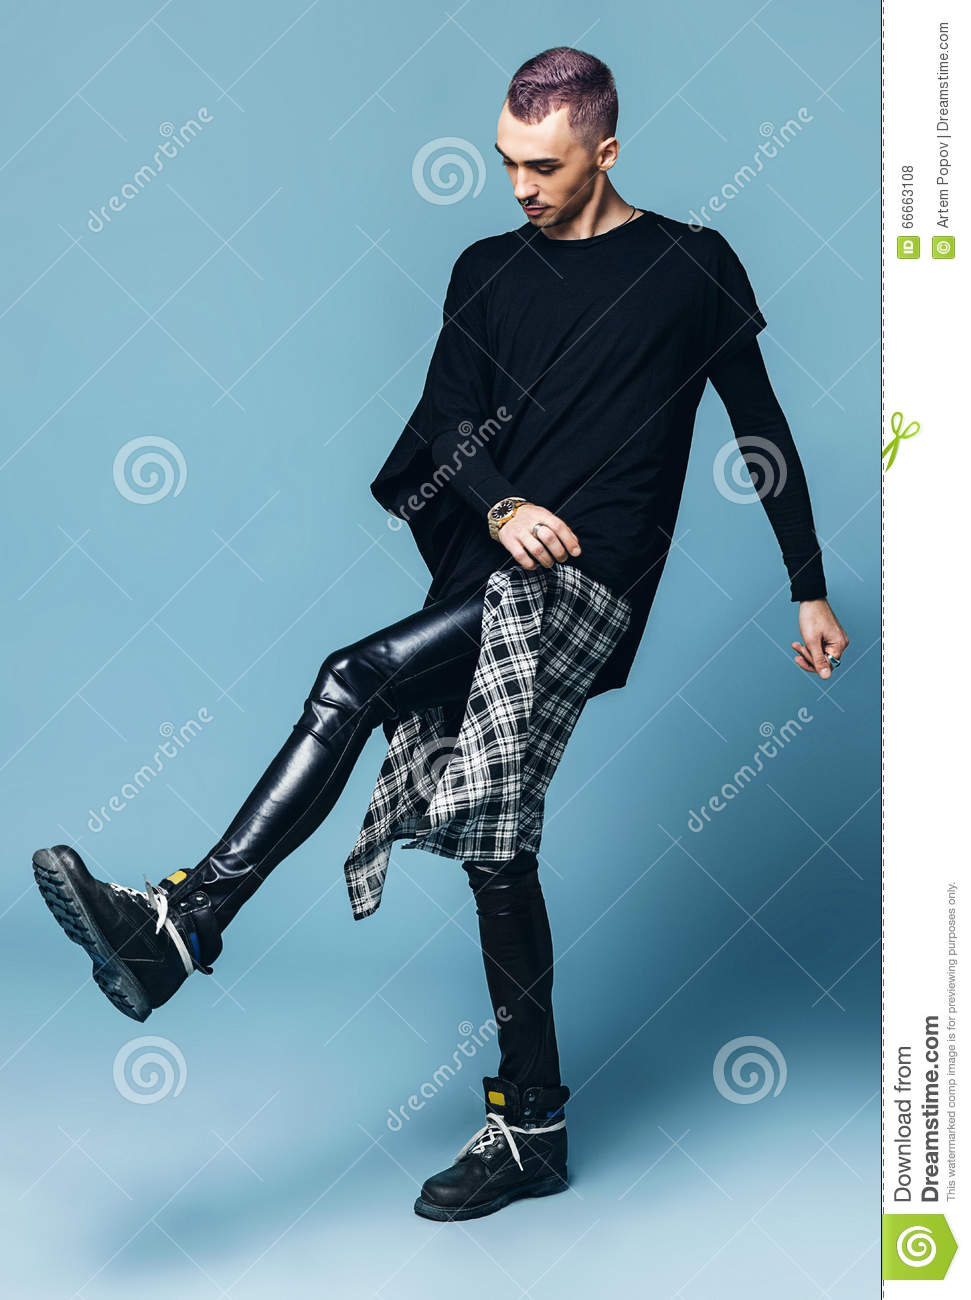 Man With Purple Hair Kicking Leg In Black Pants Stock Photo Image